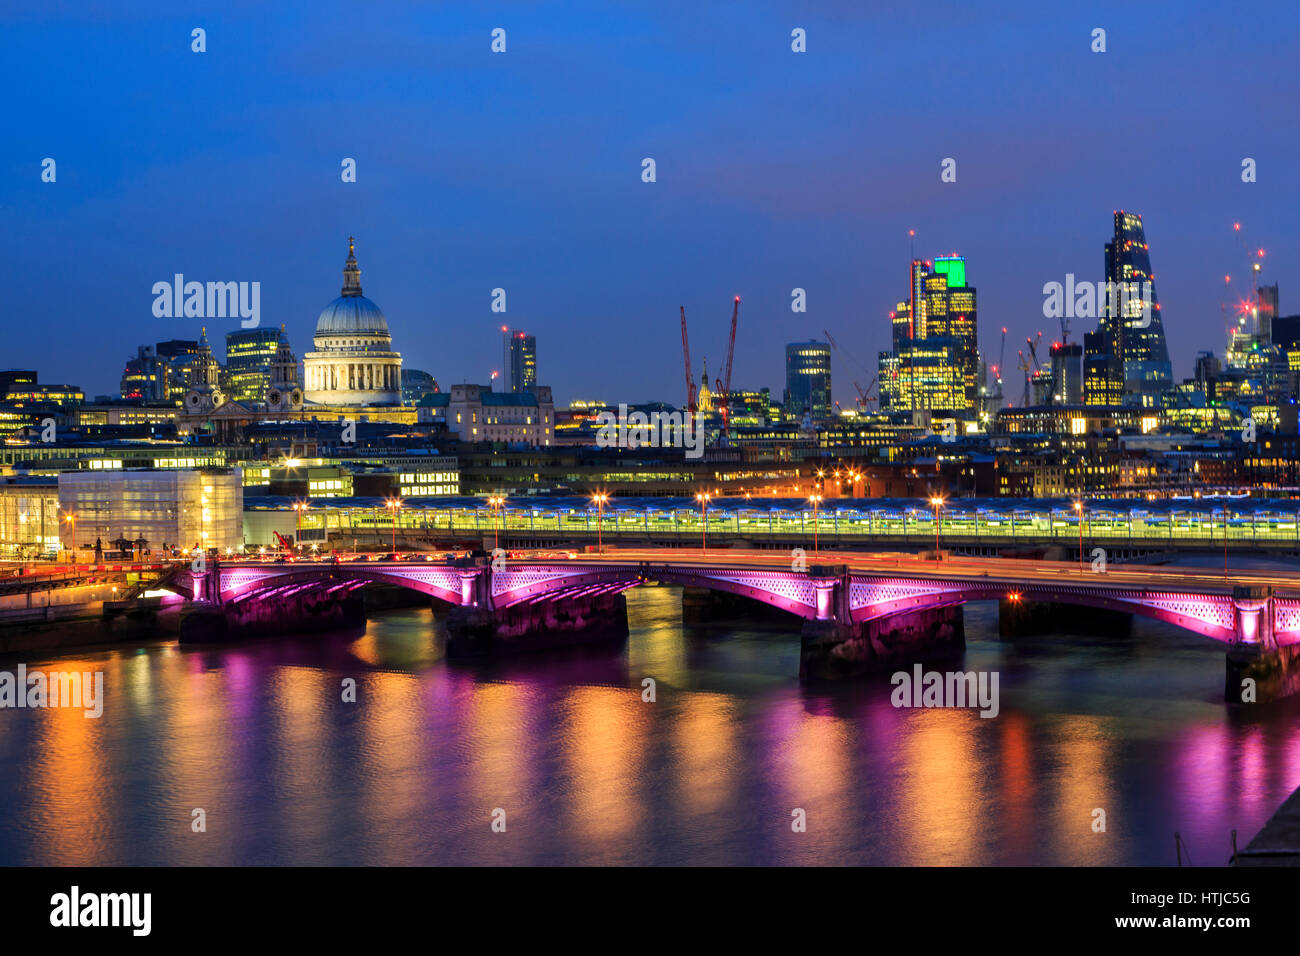 St Paul's Cathedral twilight night panorama,London, UK - Stock Image